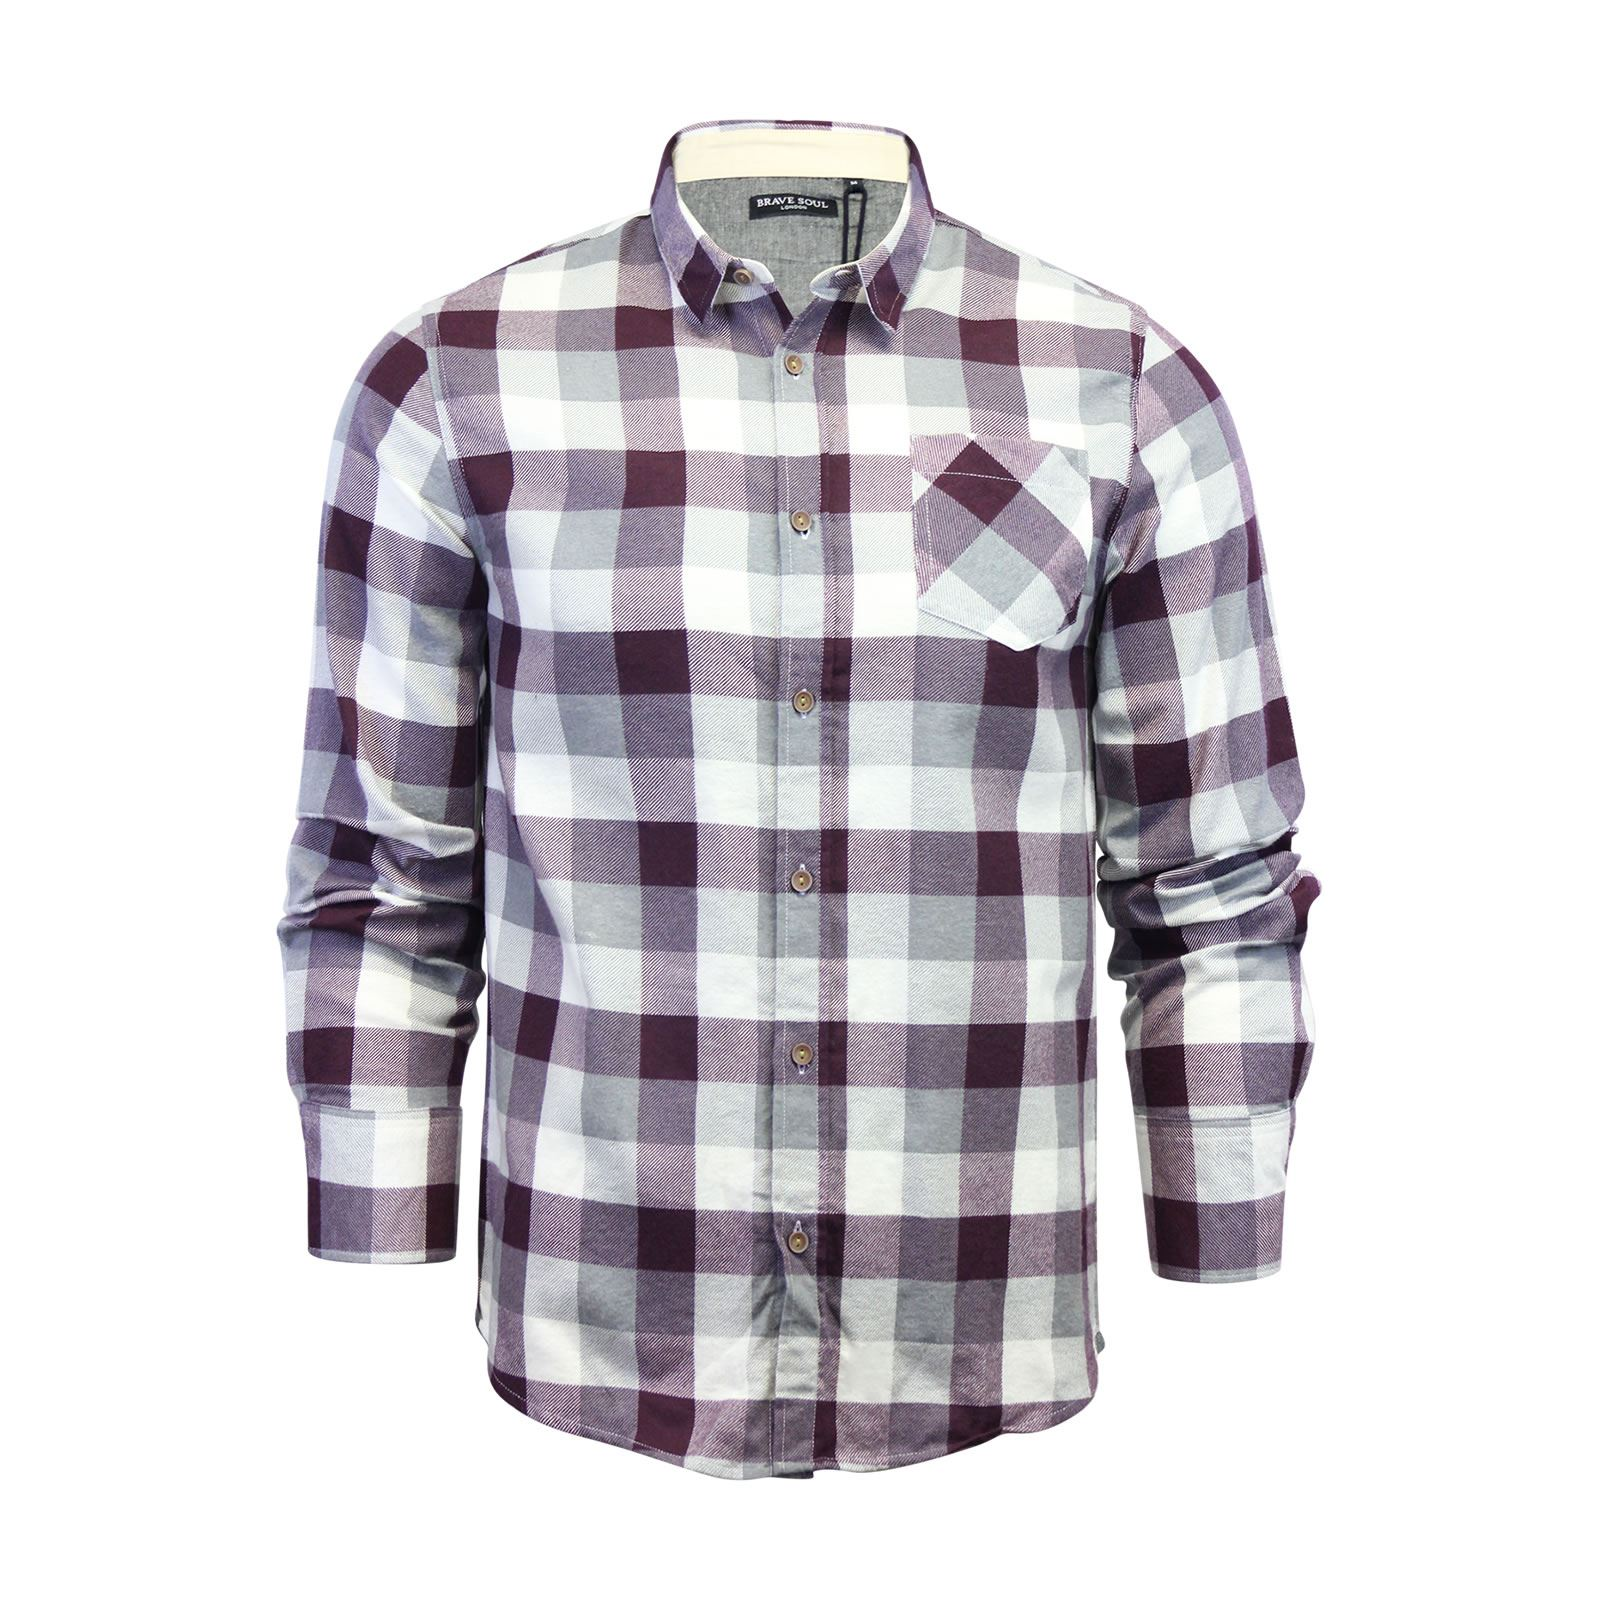 Brave-Soul-Mens-Check-Shirt-Flannel-Brushed-Cotton-Long-Sleeve-Casual-Top thumbnail 62